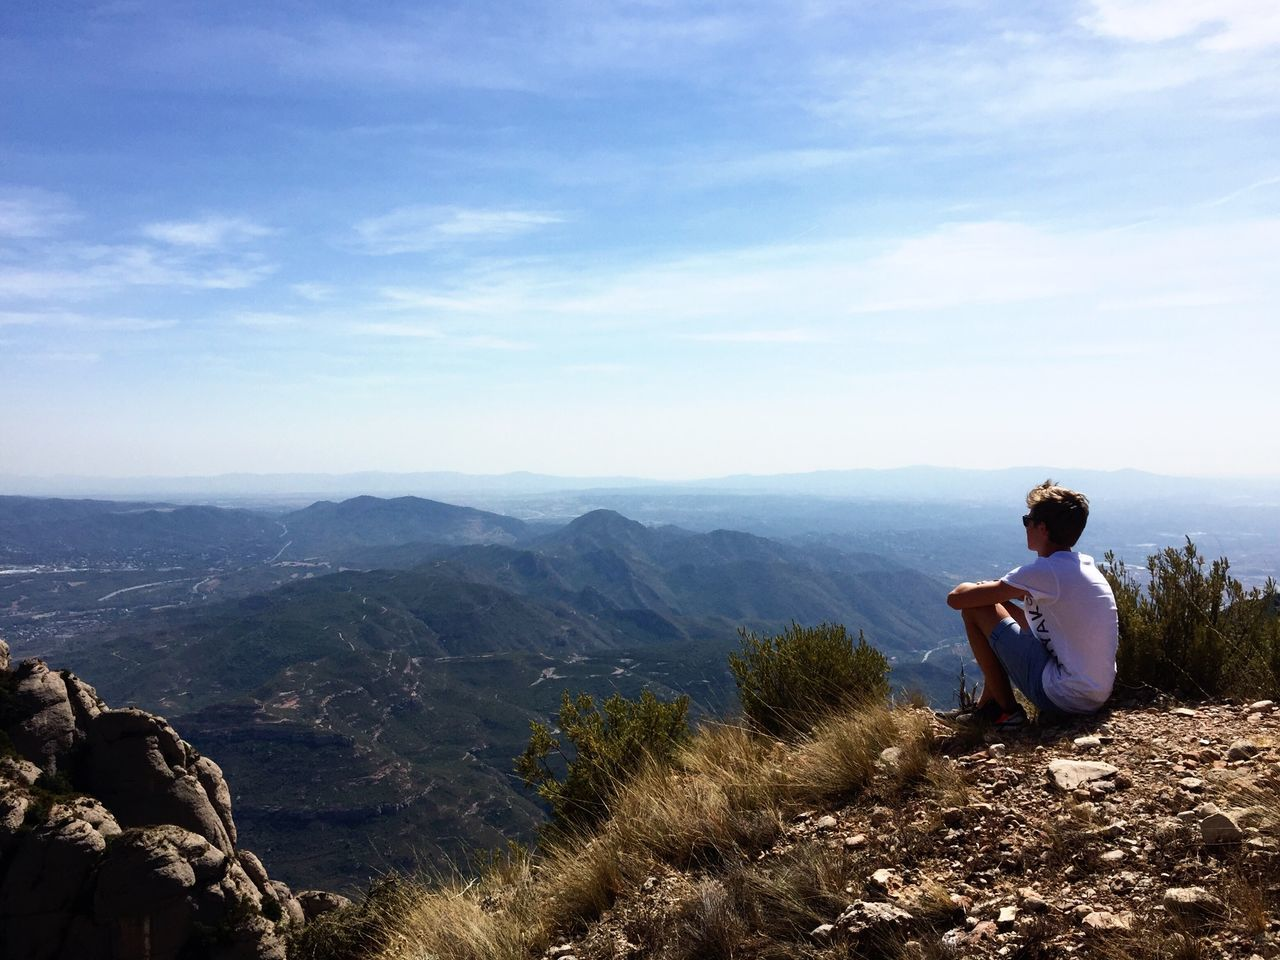 real people, nature, sitting, one person, sky, leisure activity, casual clothing, beauty in nature, mountain, full length, tranquil scene, tranquility, backpack, lifestyles, day, outdoors, scenics, men, photographing, relaxation, adventure, vacations, tree, technology, young adult, adult, people